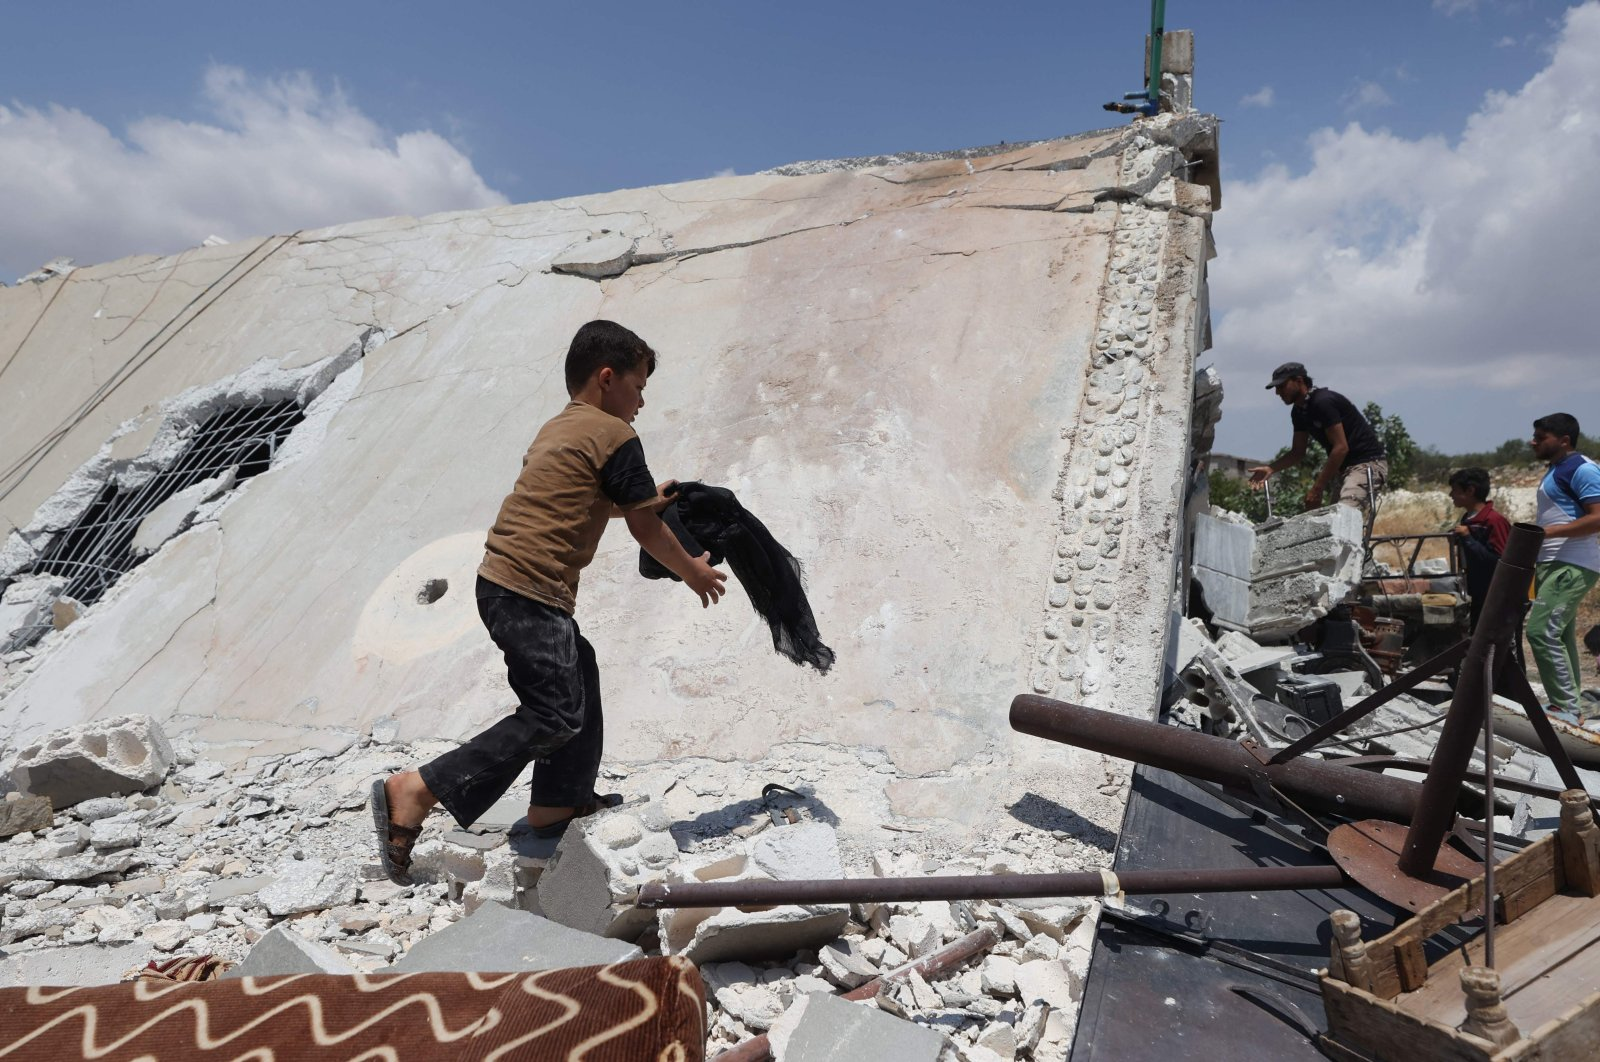 A young boy salvages belongings from a house destroyed by a Russian missile attack in the Jabal al-Zawiya region in the south of Syria's opposition-held Idlib province, on July 4, 2021. (AFP Photo)